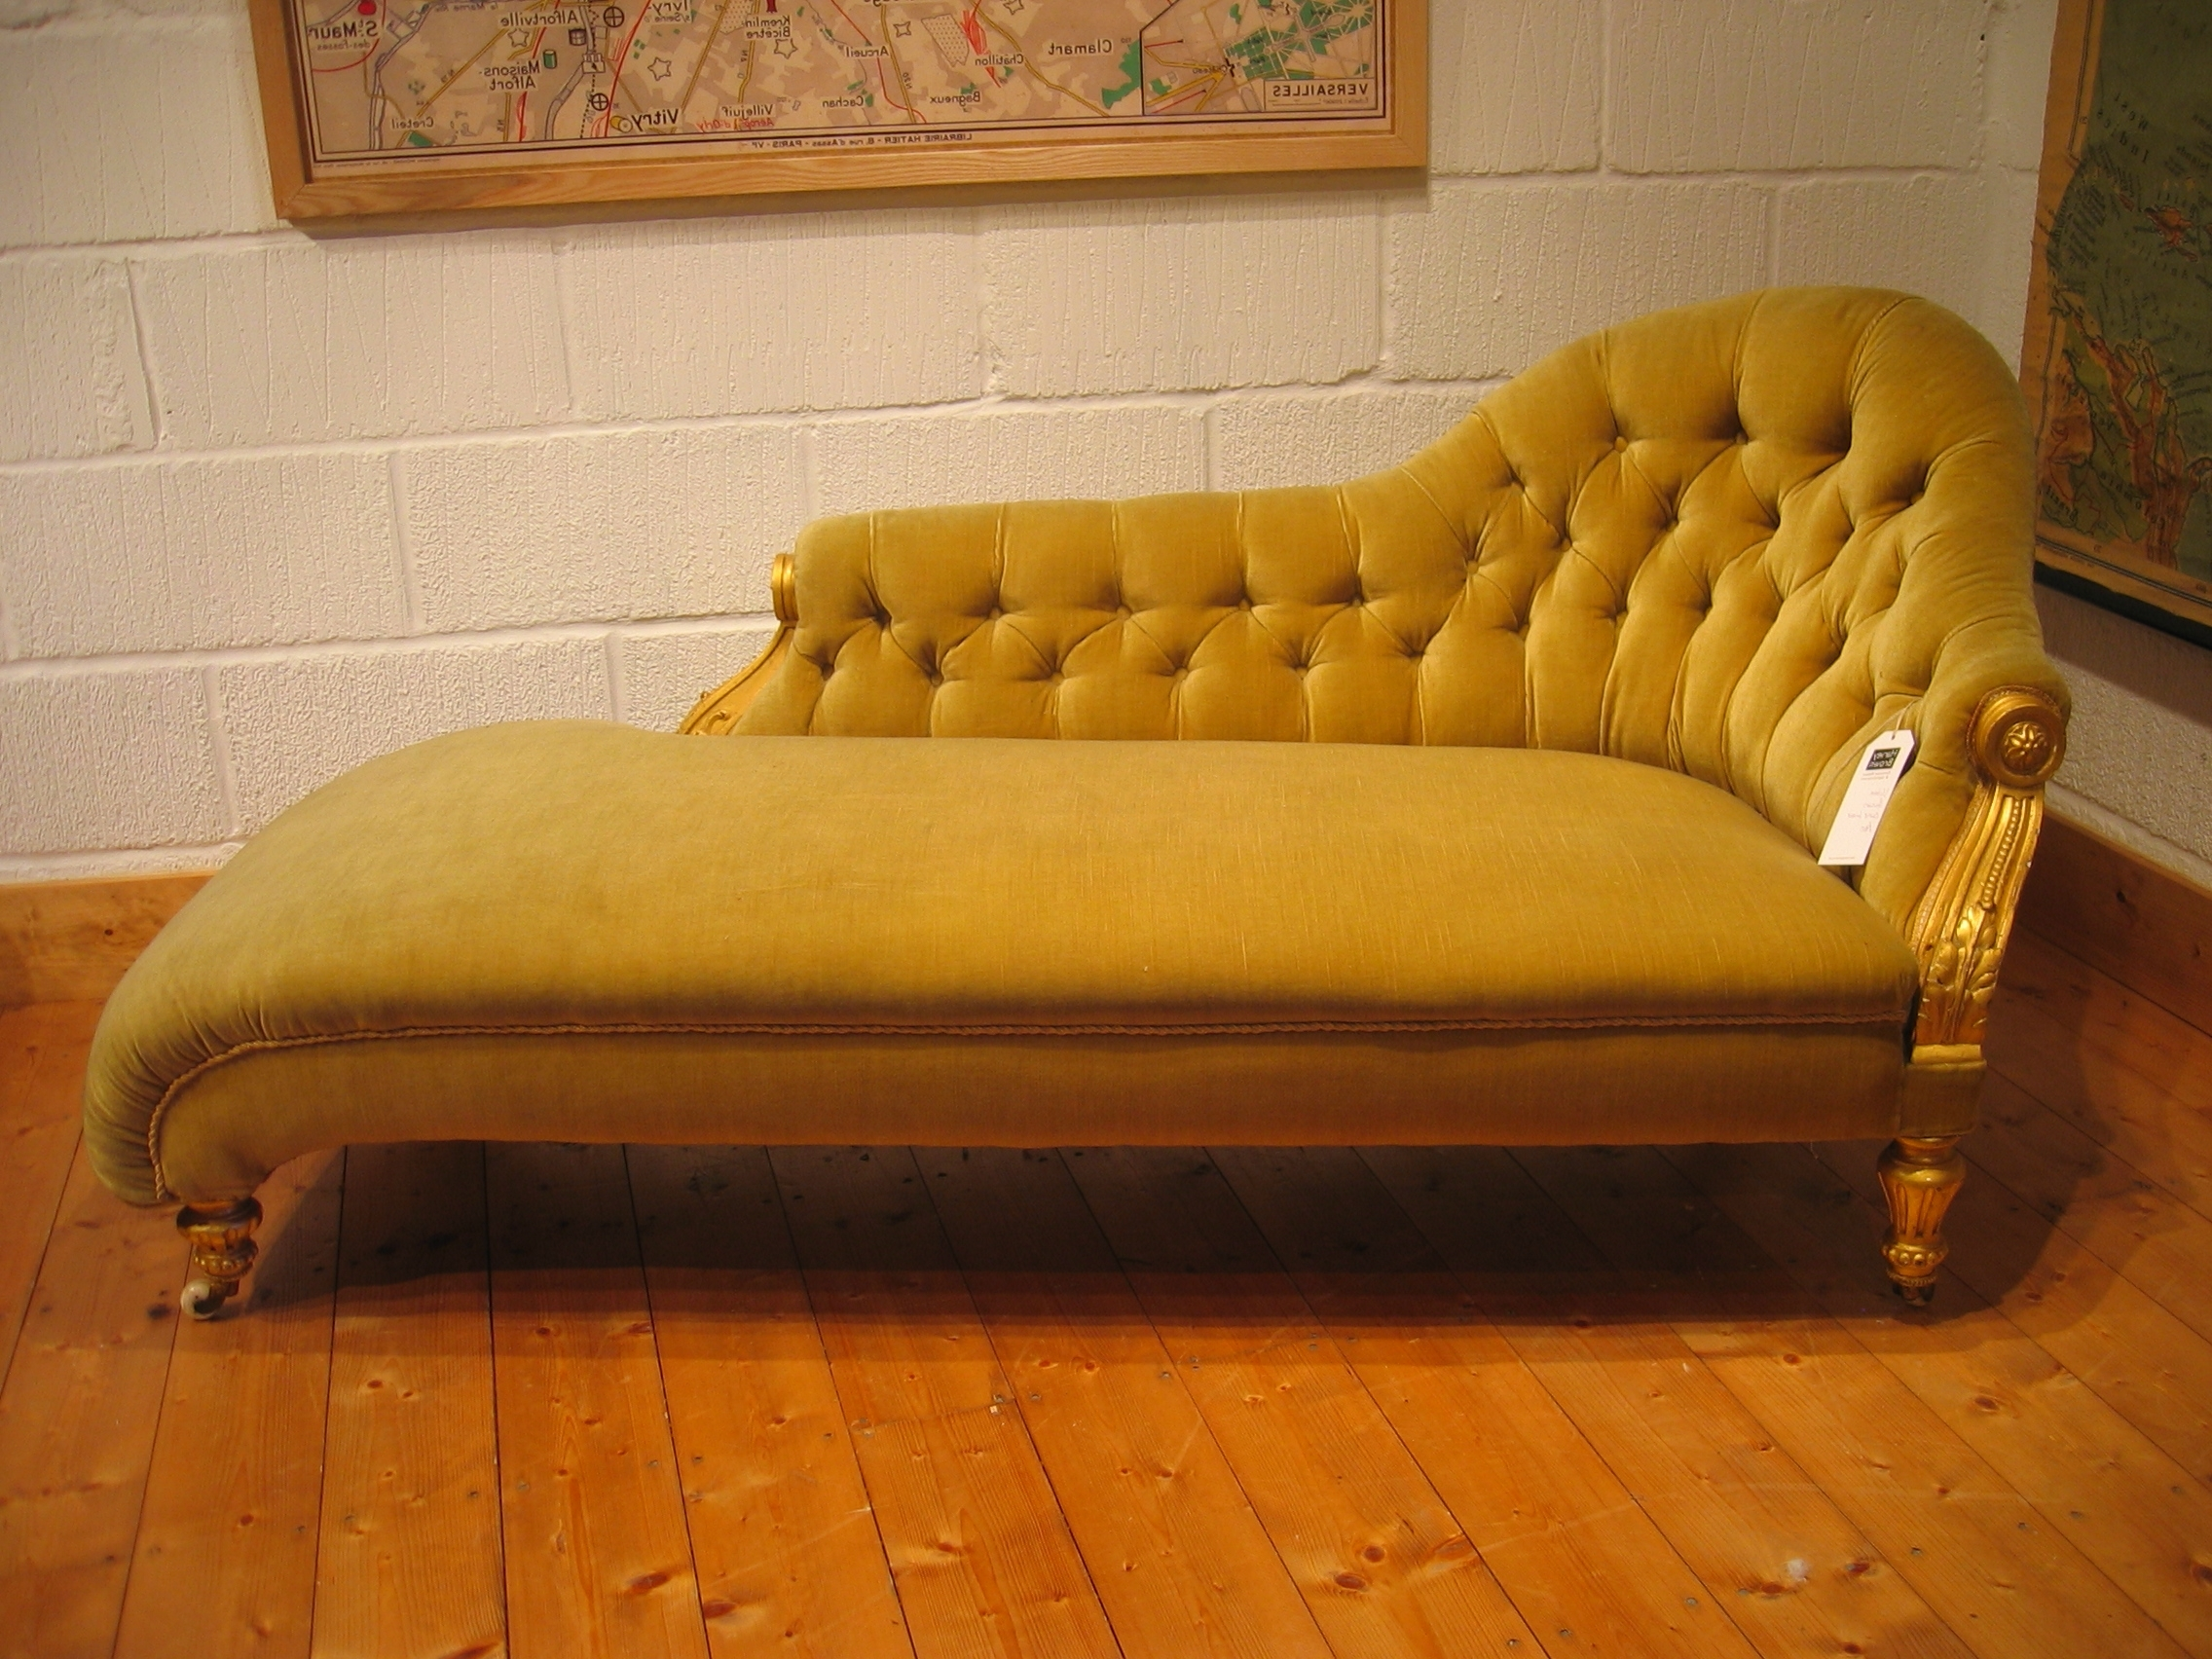 Yellow Color Antique Victorian Chaise Lounge Sofa Bed With Wooden Pertaining To Fashionable Vintage Chaise Lounges (View 15 of 15)